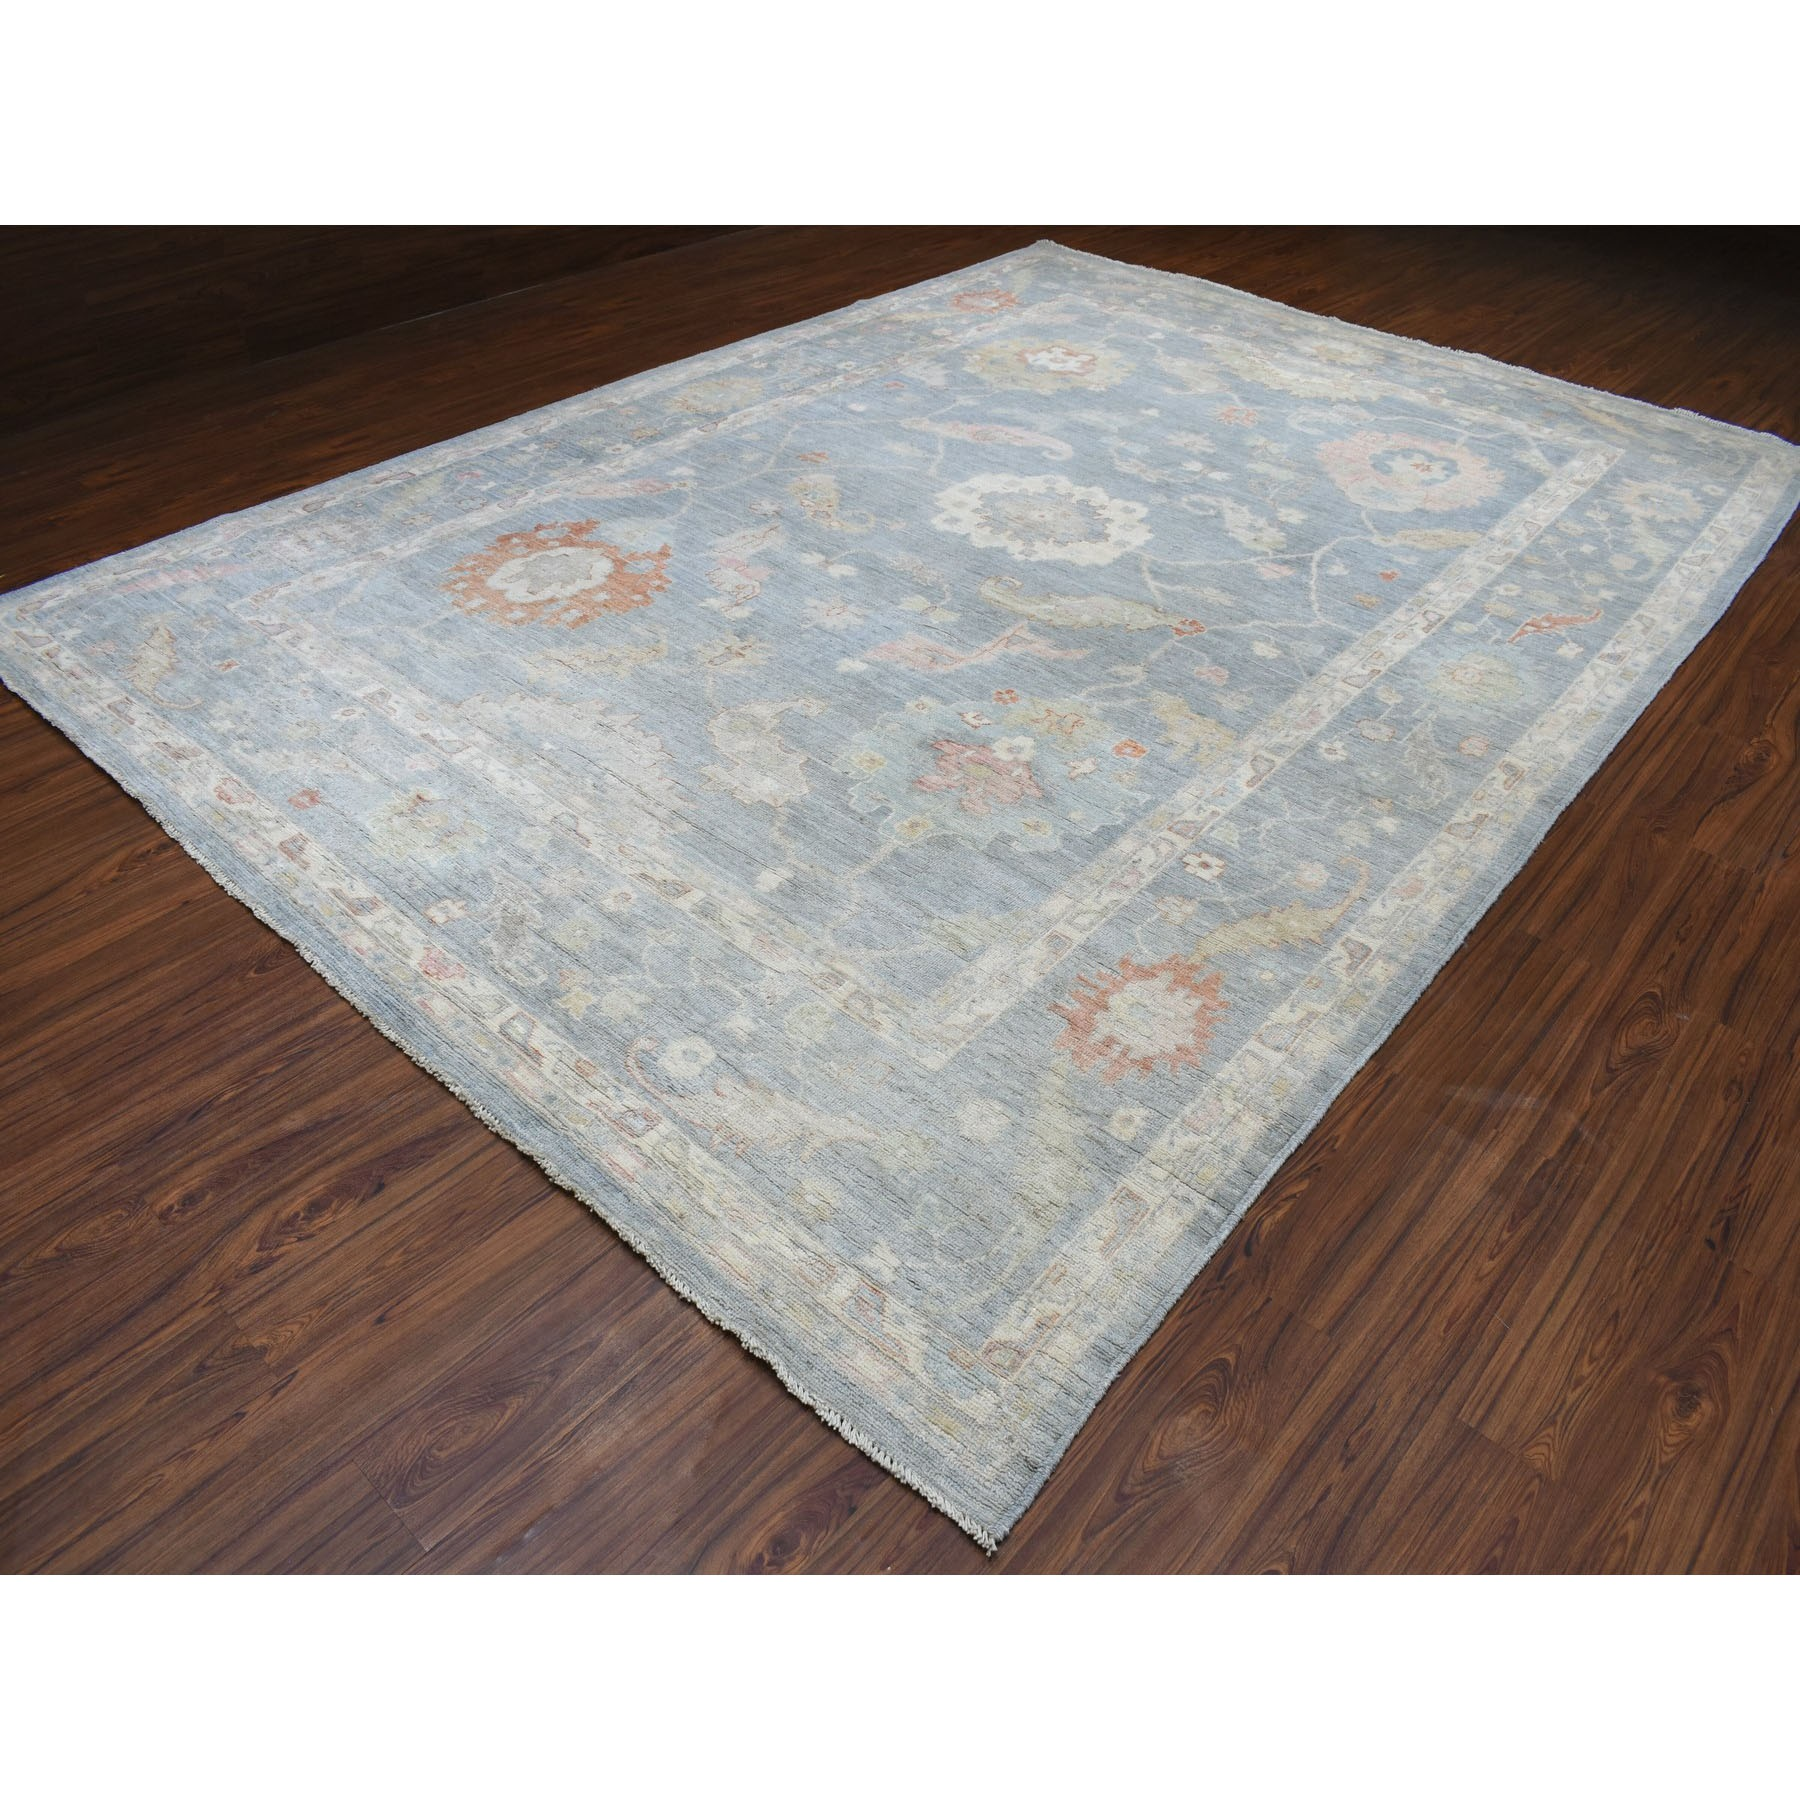 """10'x13'9"""" Blue Angora Oushak With Soft Wool Hand Knotted Oriental Rug"""